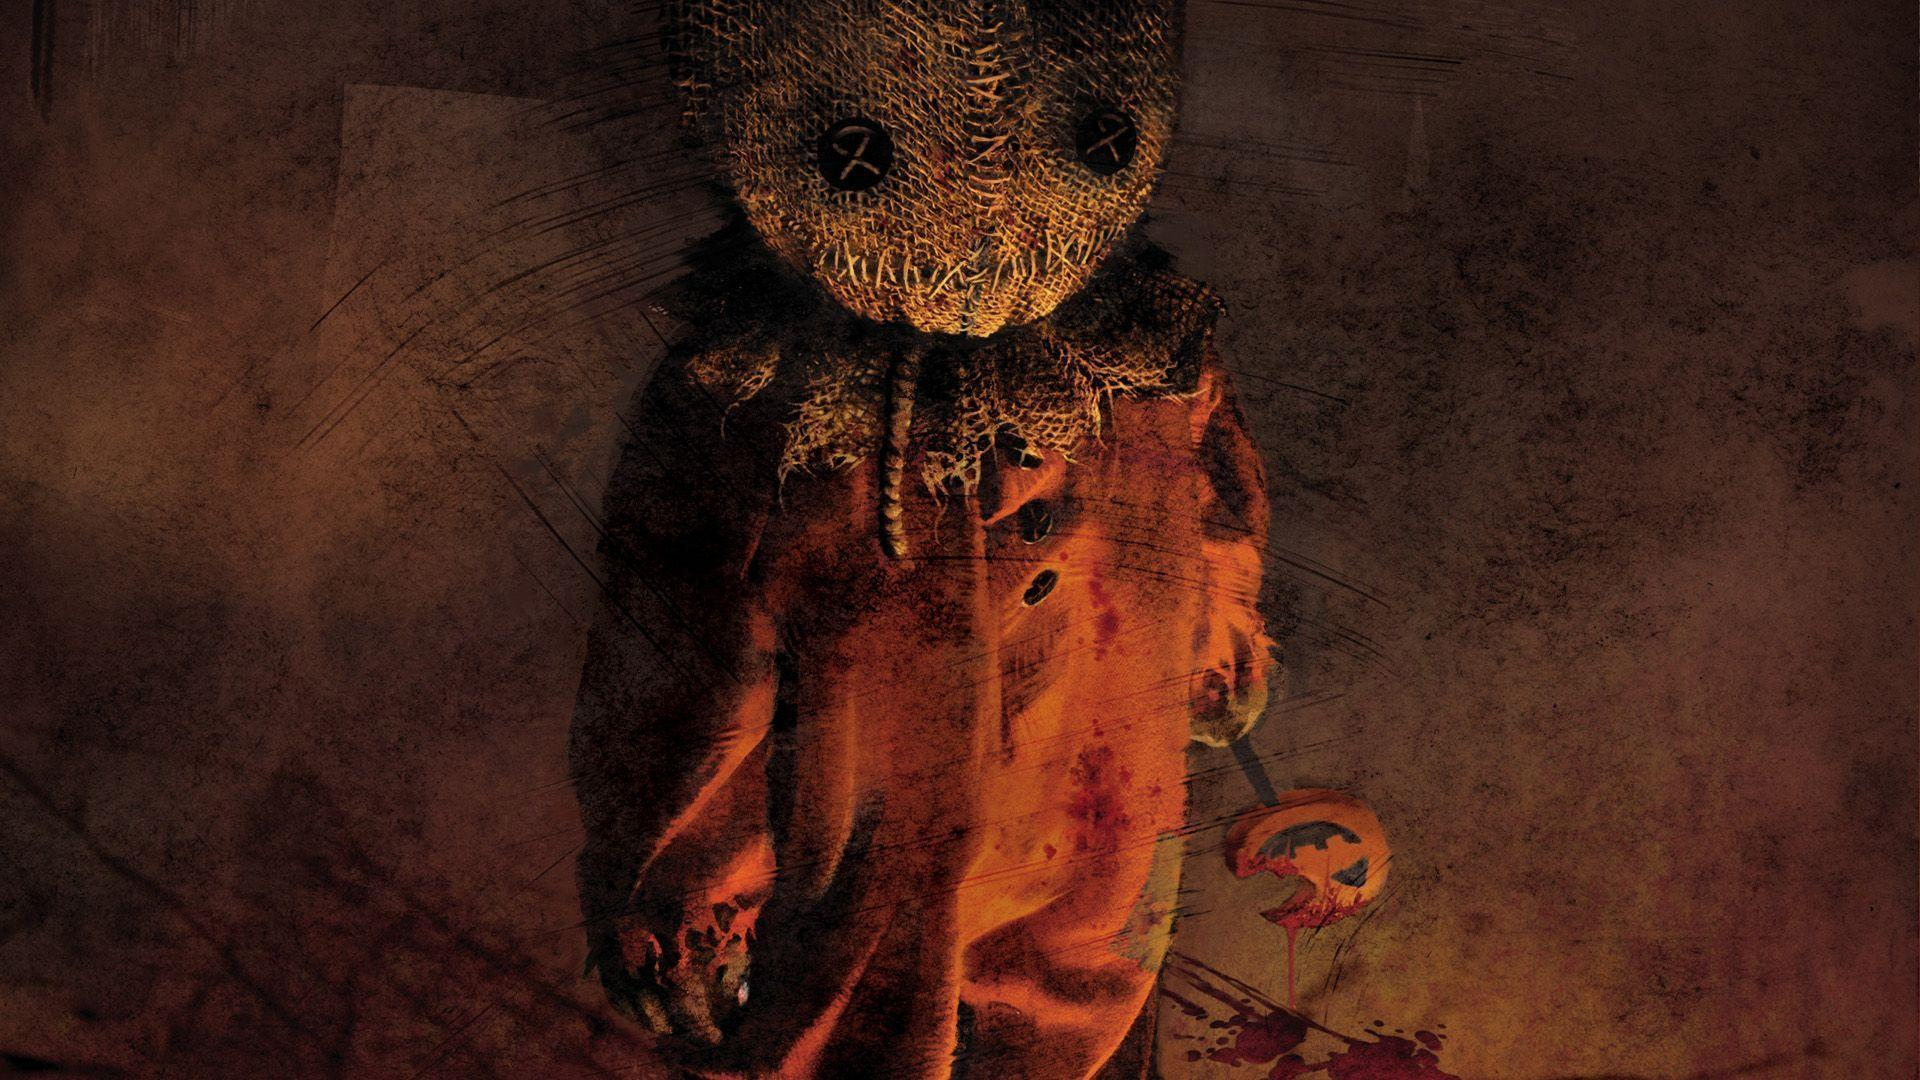 Trick R Treat Sam Wallpaper Posted By Christopher Thompson